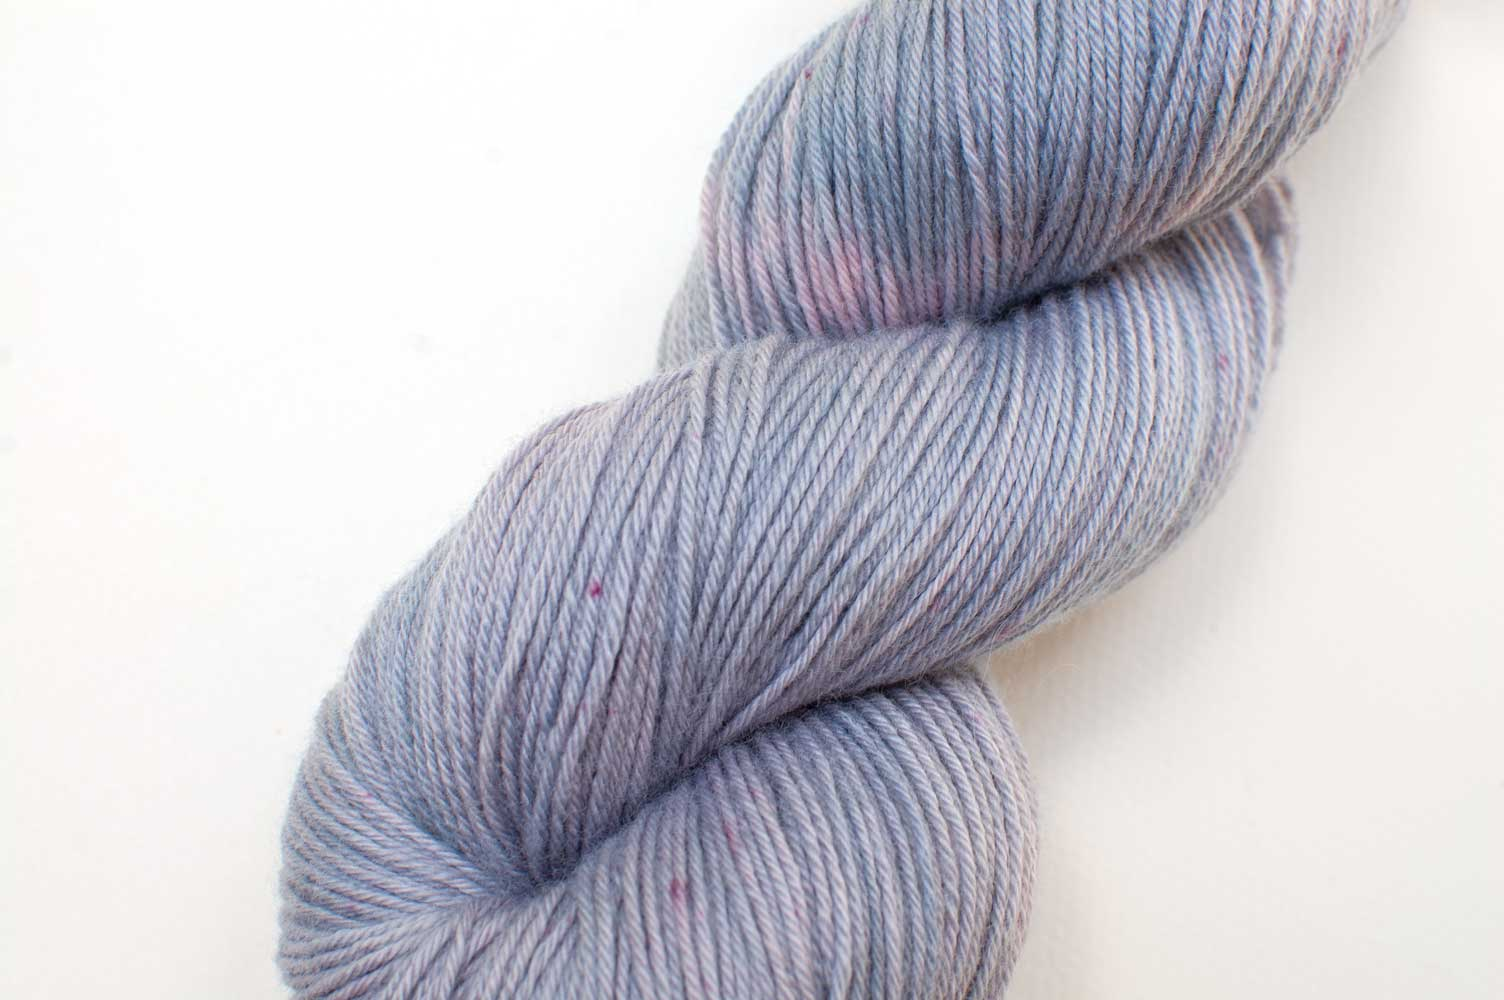 Cashmere Merino Luxe in Organic Indigo and Lac Speckle